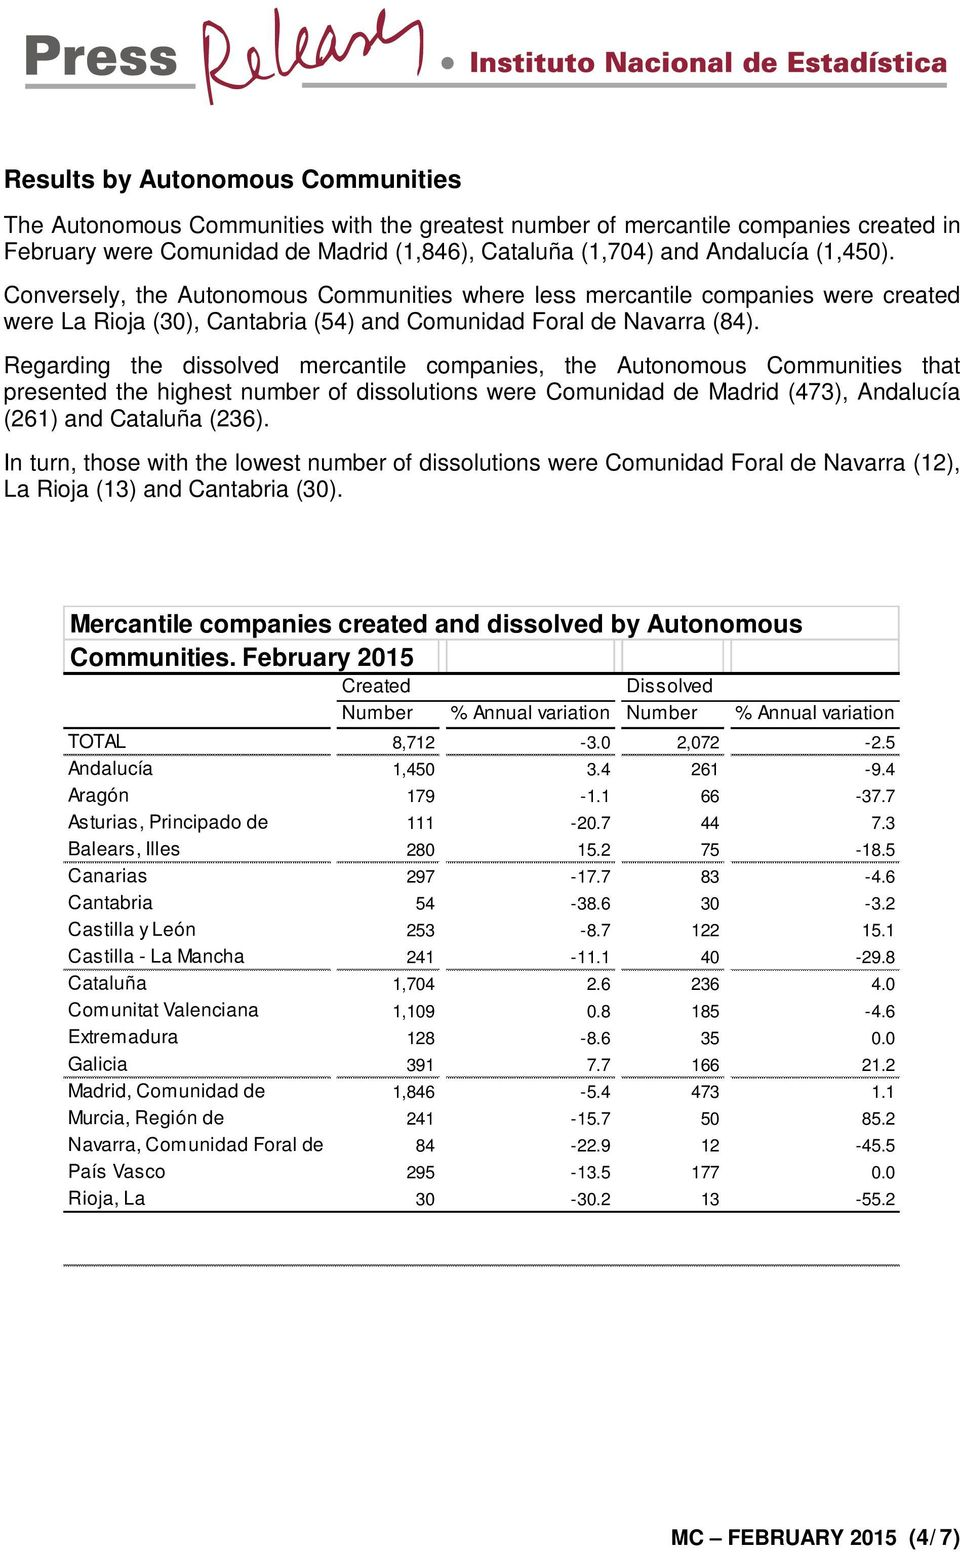 Regarding the dissolved mercantile companies, the Autonomous Communities that presented the highest number of dissolutions were Comunidad de Madrid (473), Andalucía (261) and Cataluña (236).